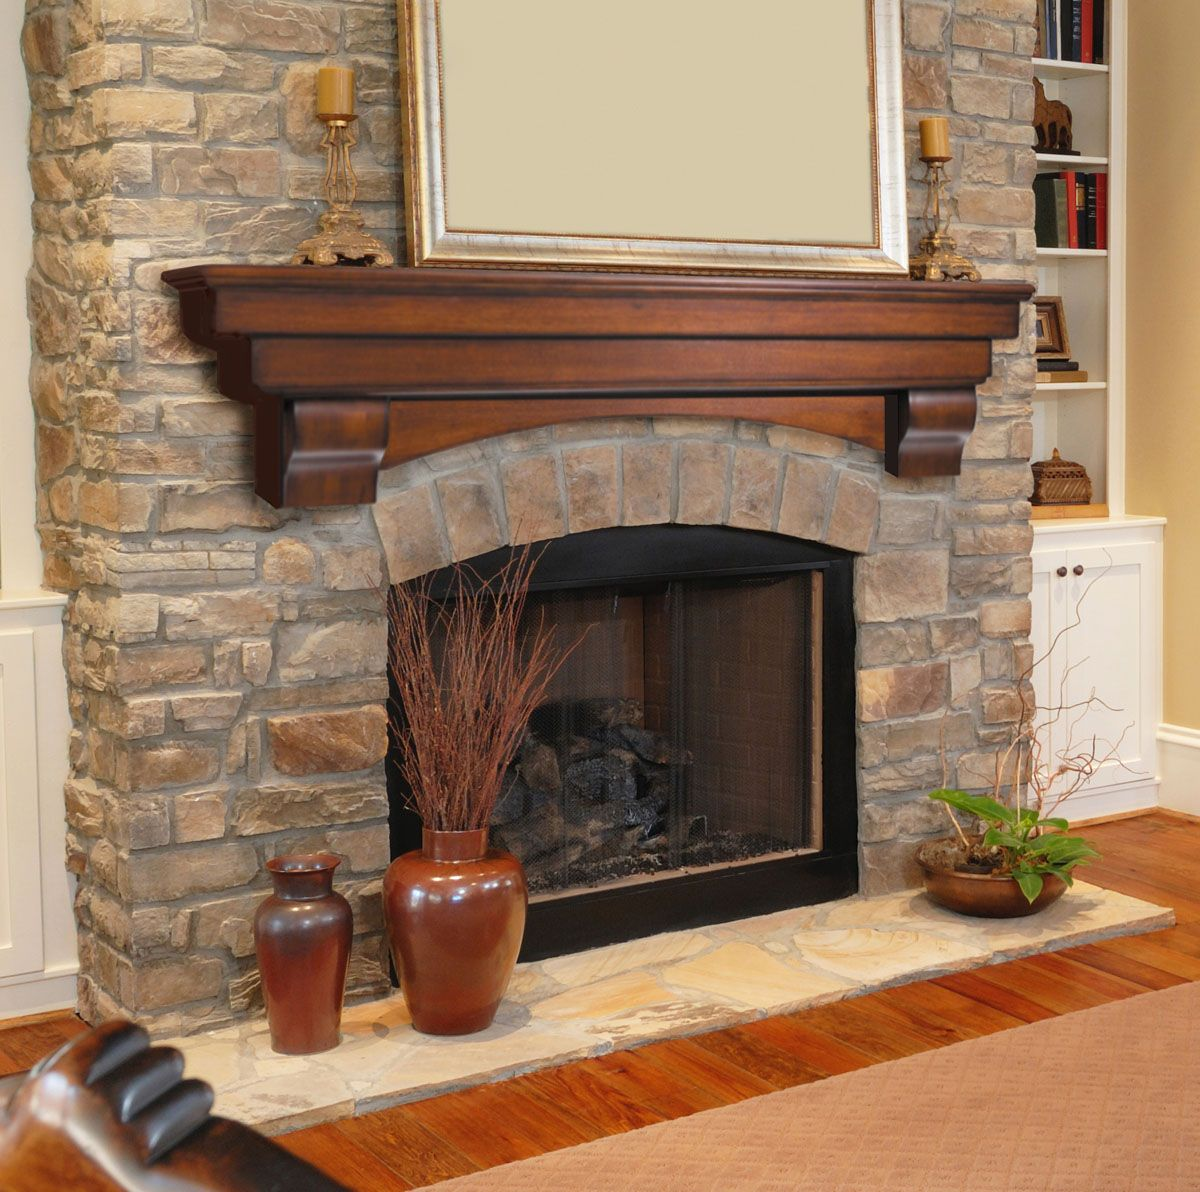 17 best images about fireplace on pinterest wood fireplace surrounds mantels and mantles